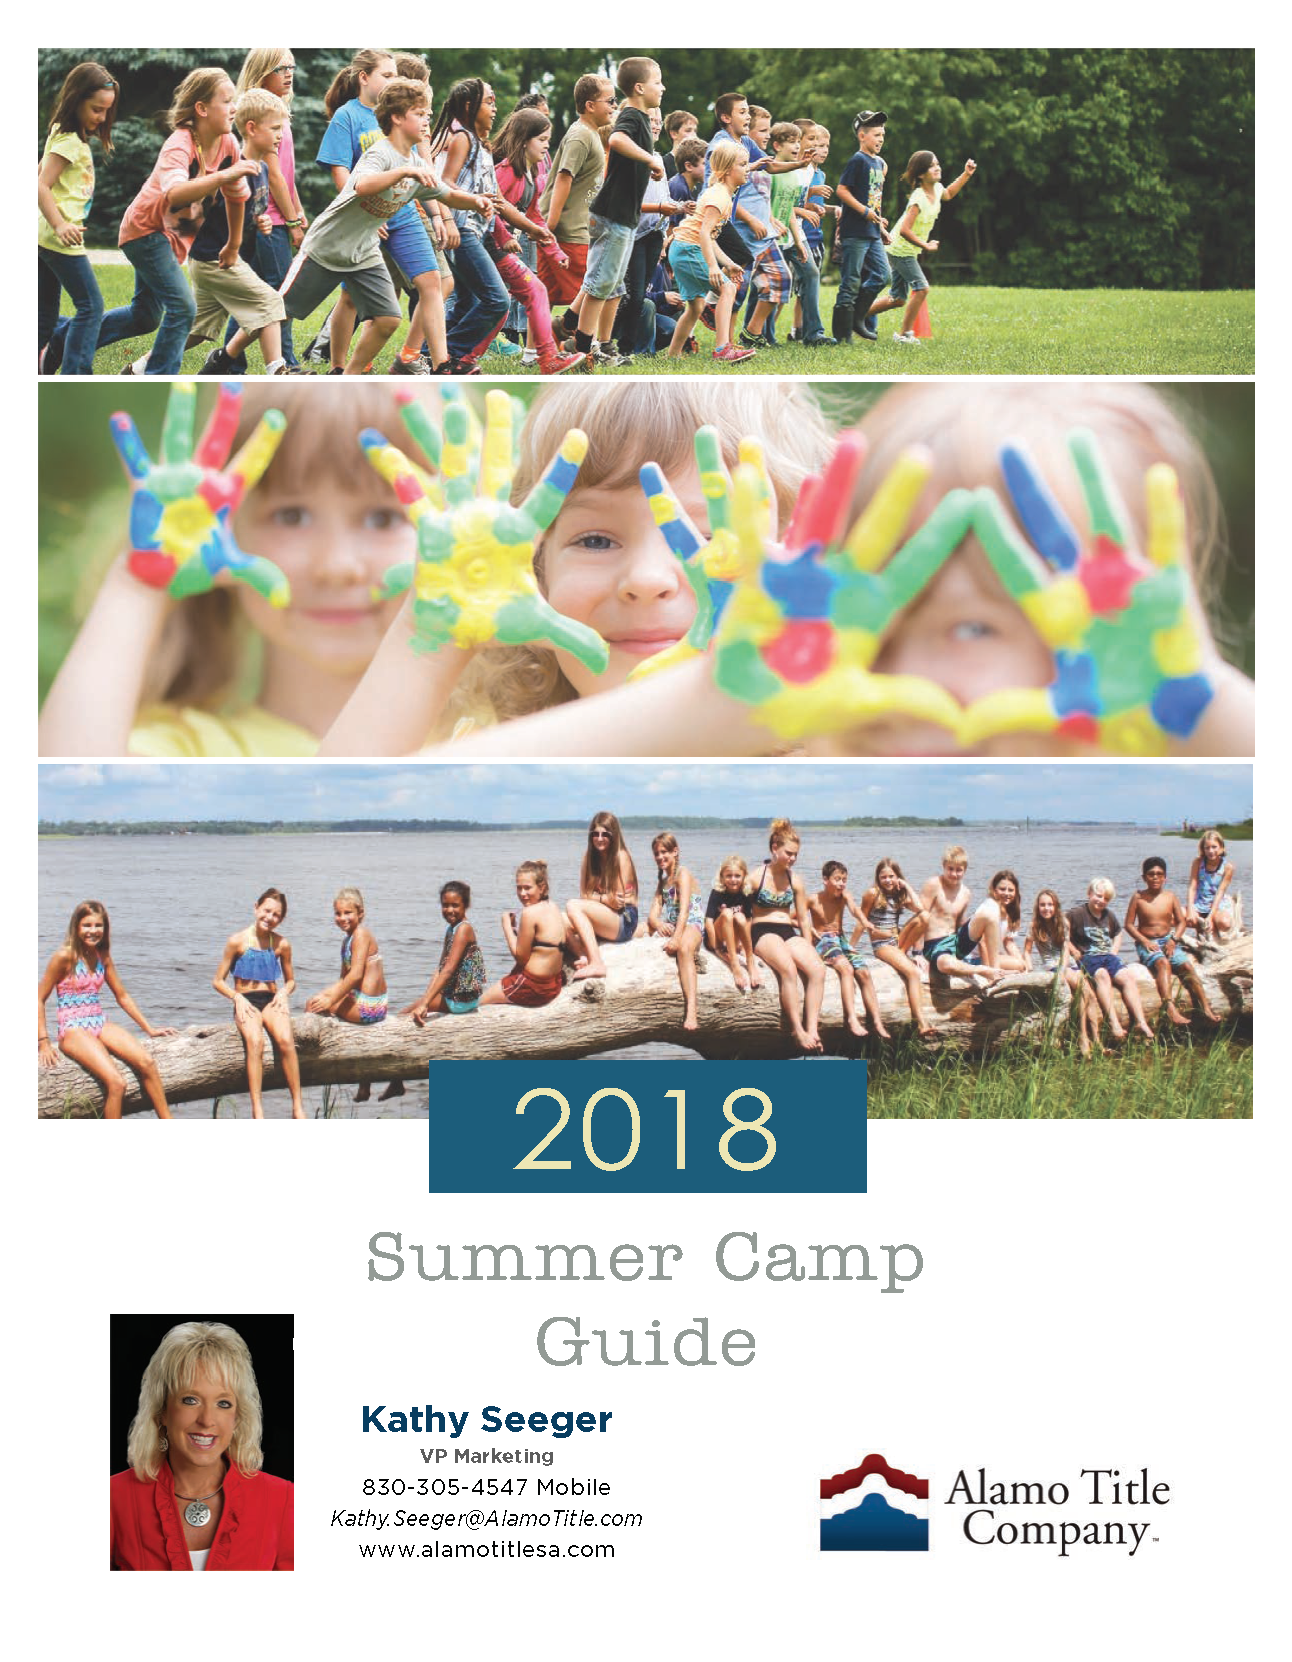 San Antonio Summer Camp Guide 2018 (002)_Page_1.png